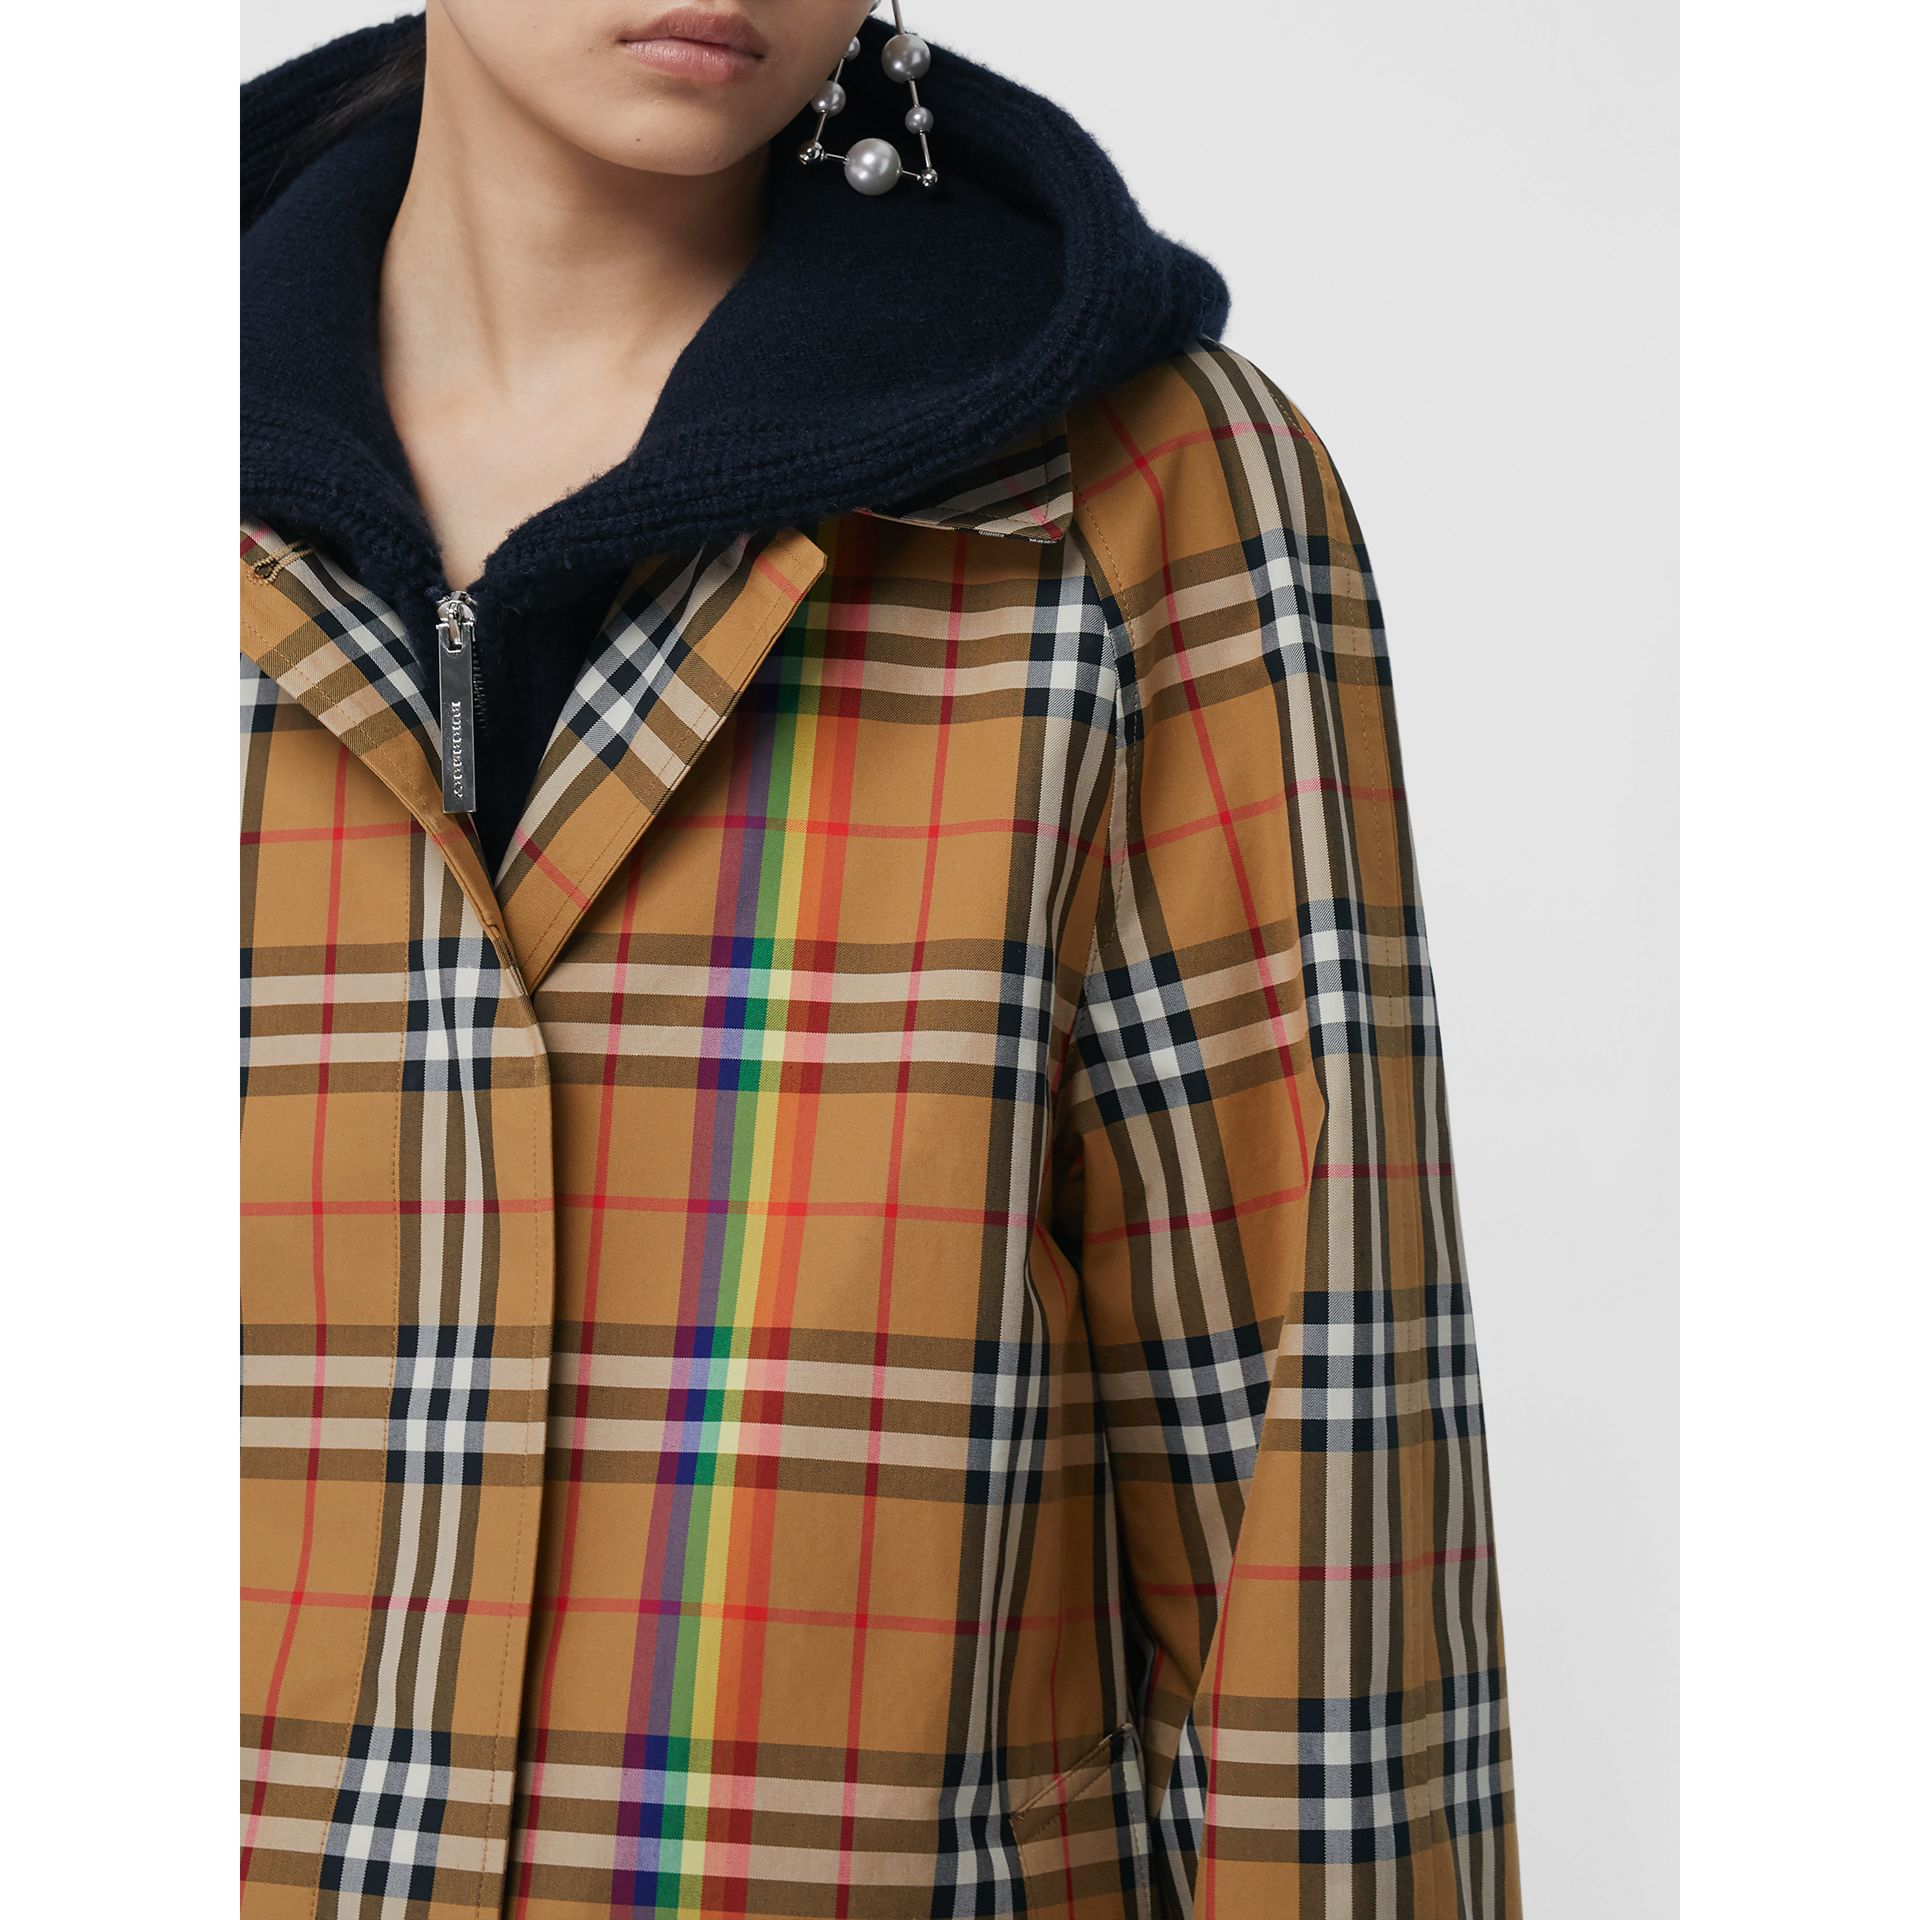 Rainbow Vintage Check Car Coat in Multicolour - Women | Burberry Australia - gallery image 4